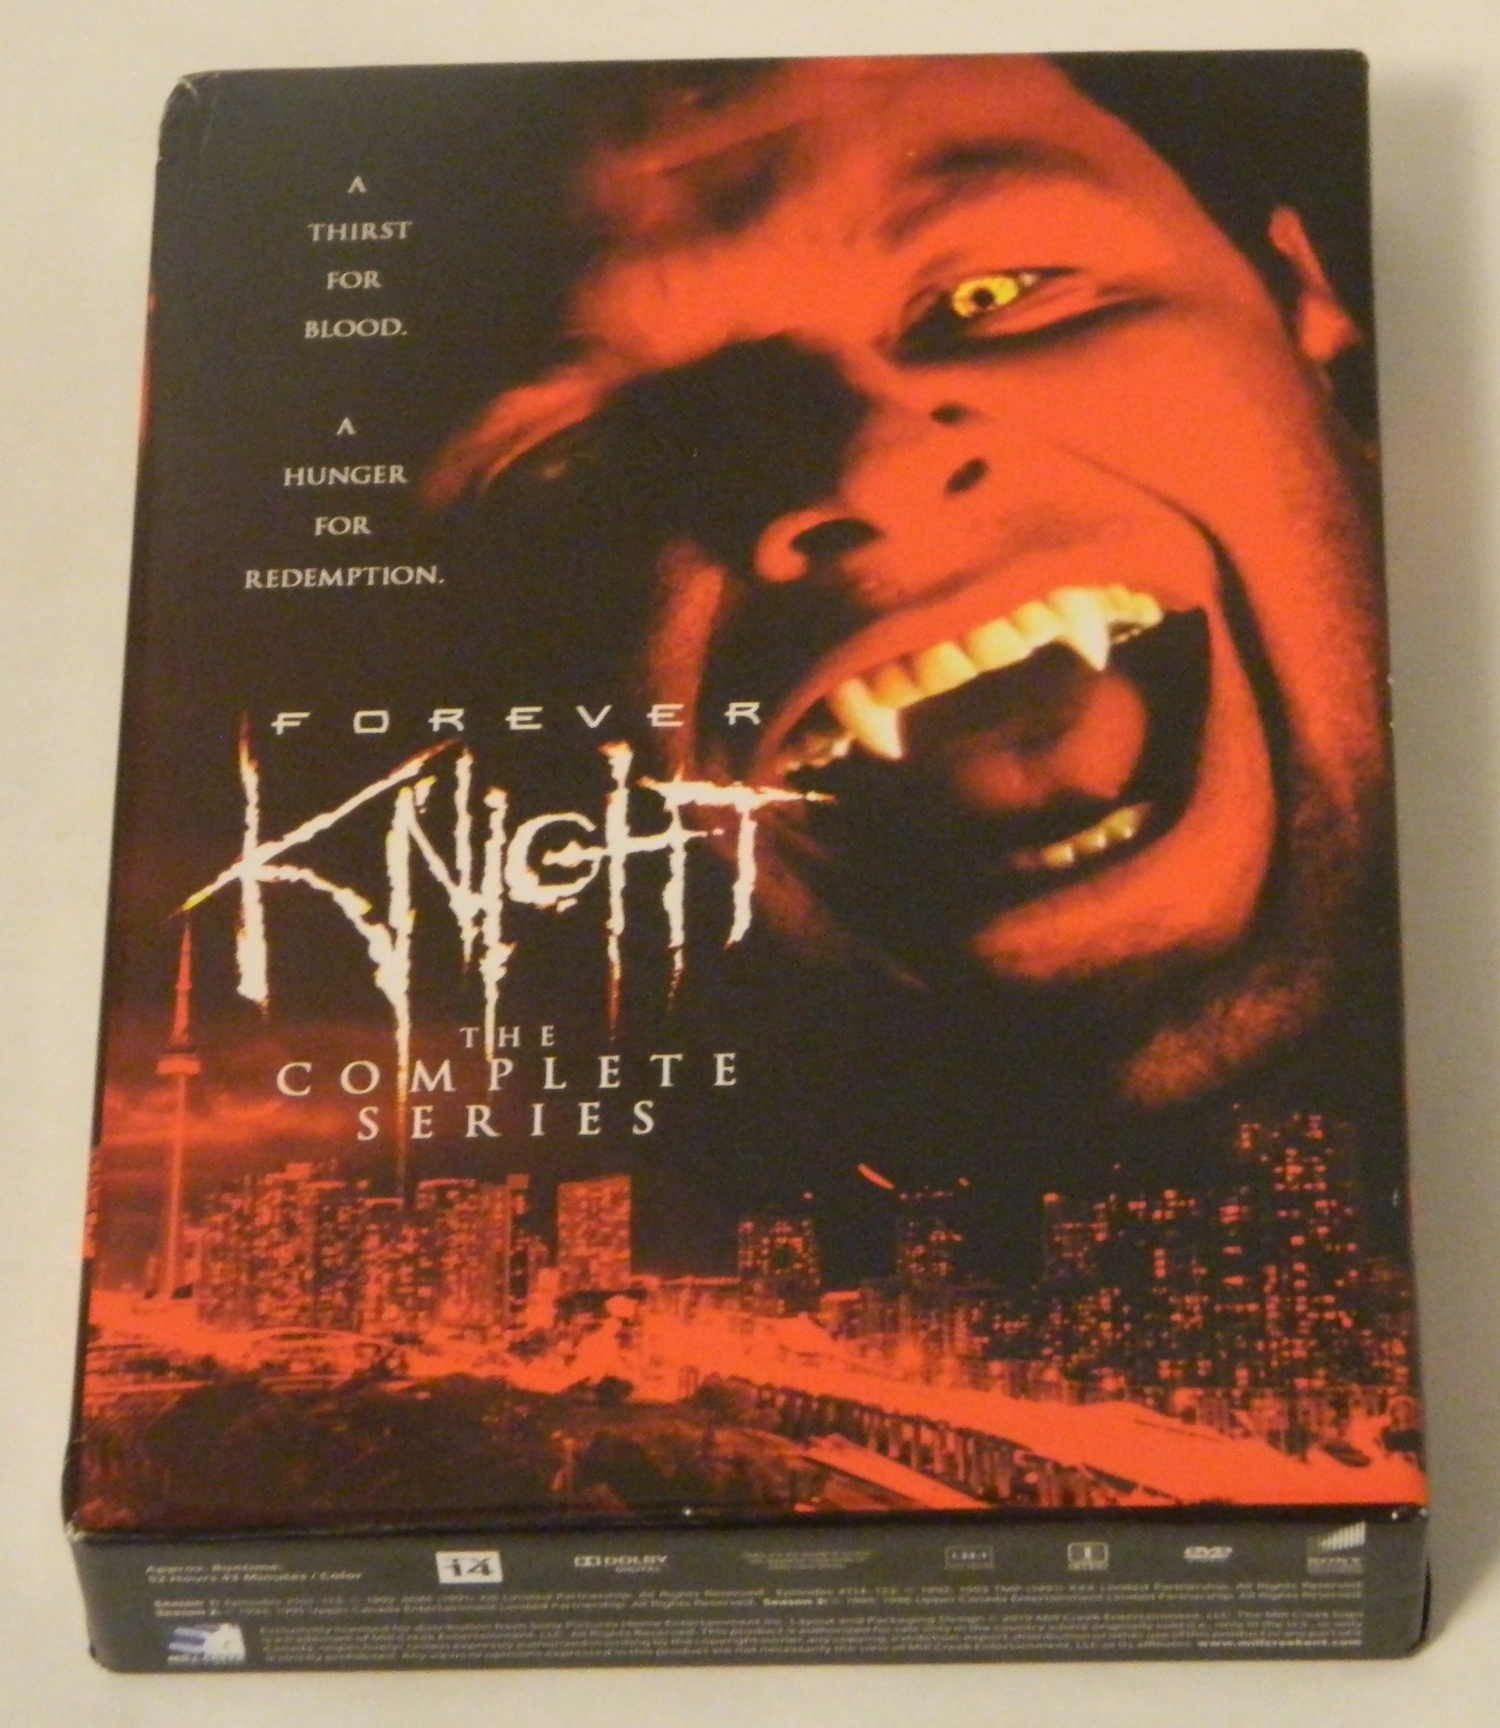 Forever Knight The Complete Series DVD